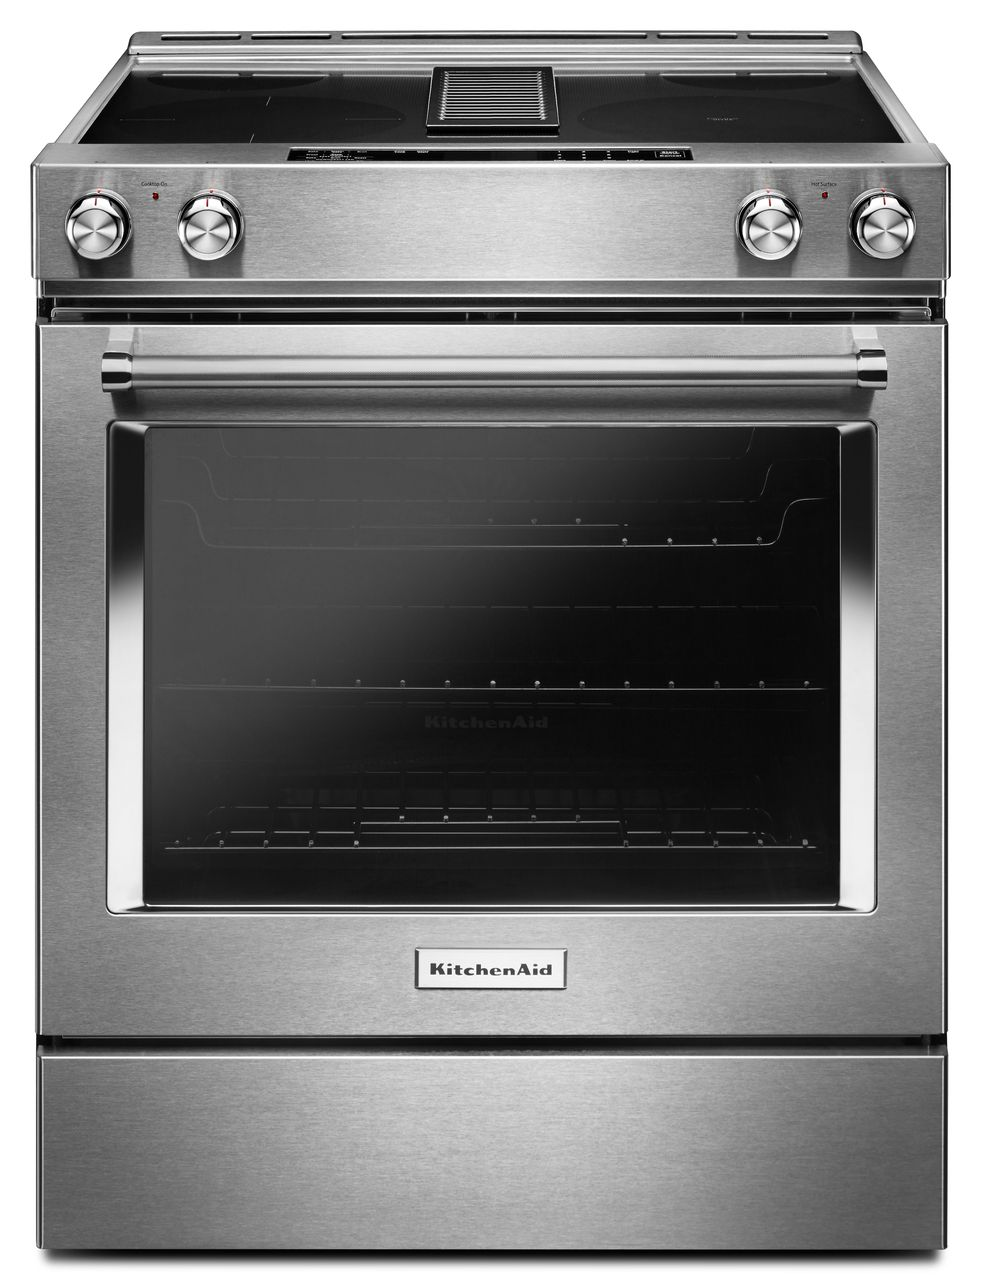 KitchenAid Range/Stove/Oven Model KSEG950ESS0 Parts